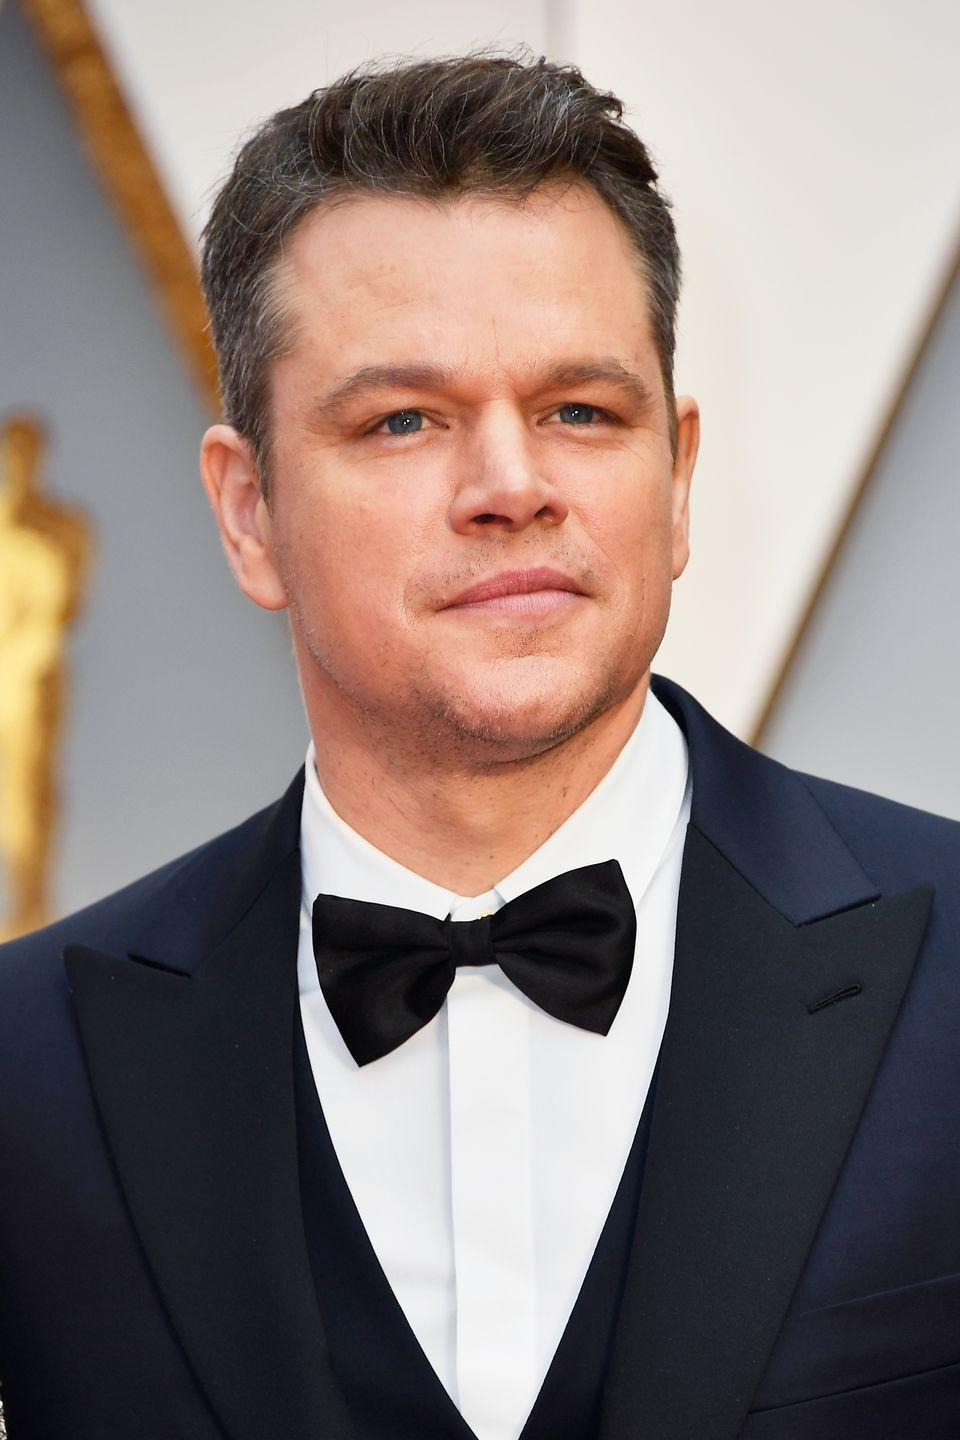 "<p>Damon <a href=""https://www.theatlantic.com/entertainment/archive/2011/12/matt-damon-hated-third-bourne-movie/334313/"" rel=""nofollow noopener"" target=""_blank"" data-ylk=""slk:hated"" class=""link rapid-noclick-resp"">hated</a> the third film in the <em>Bourne</em> series. ""I don't blame Tony for taking a boatload of money and handing in what he handed in. It's just that it was unreadable. This is a career ender...it's terrible. It's really embarrassing. He took his money and left."" </p>"